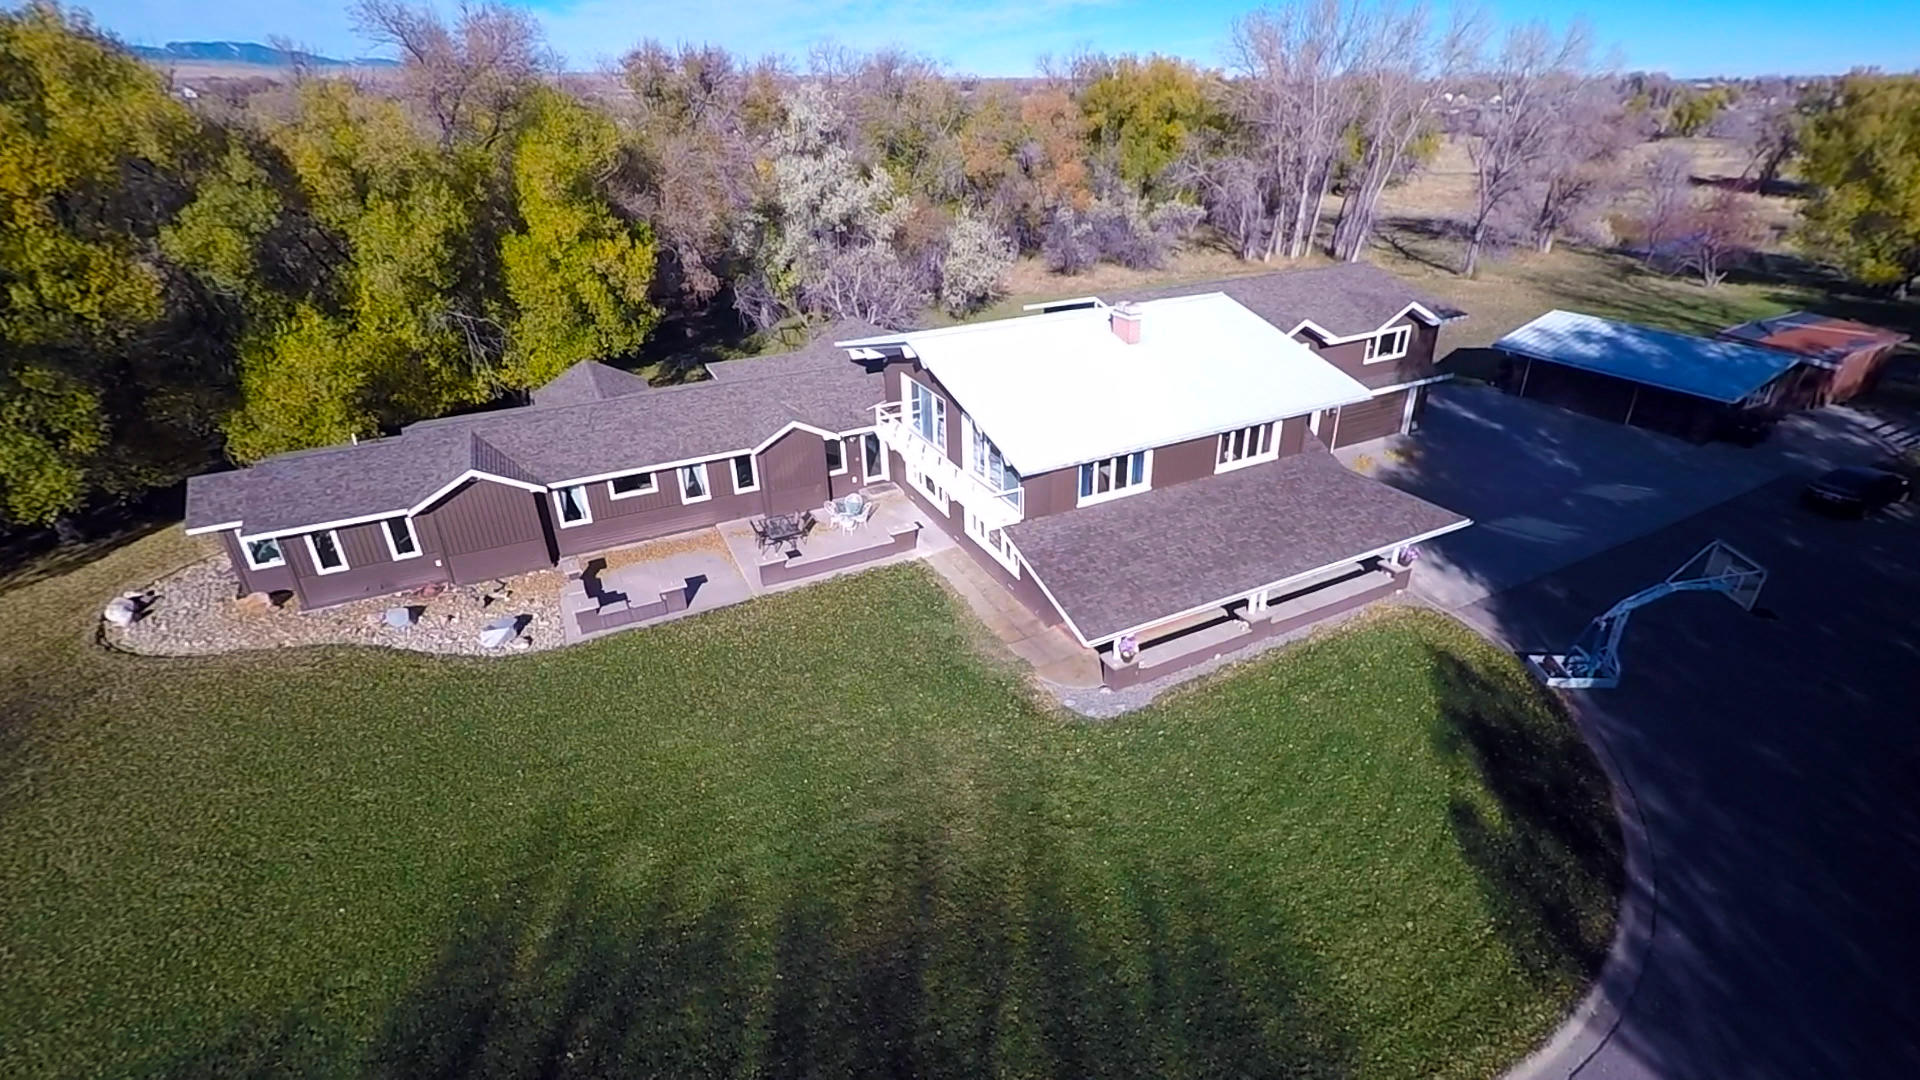 43 Knode Road, Sheridan, Wyoming 82801, 5 Bedrooms Bedrooms, ,4.5 BathroomsBathrooms,Residential,For Sale,Knode,16-855